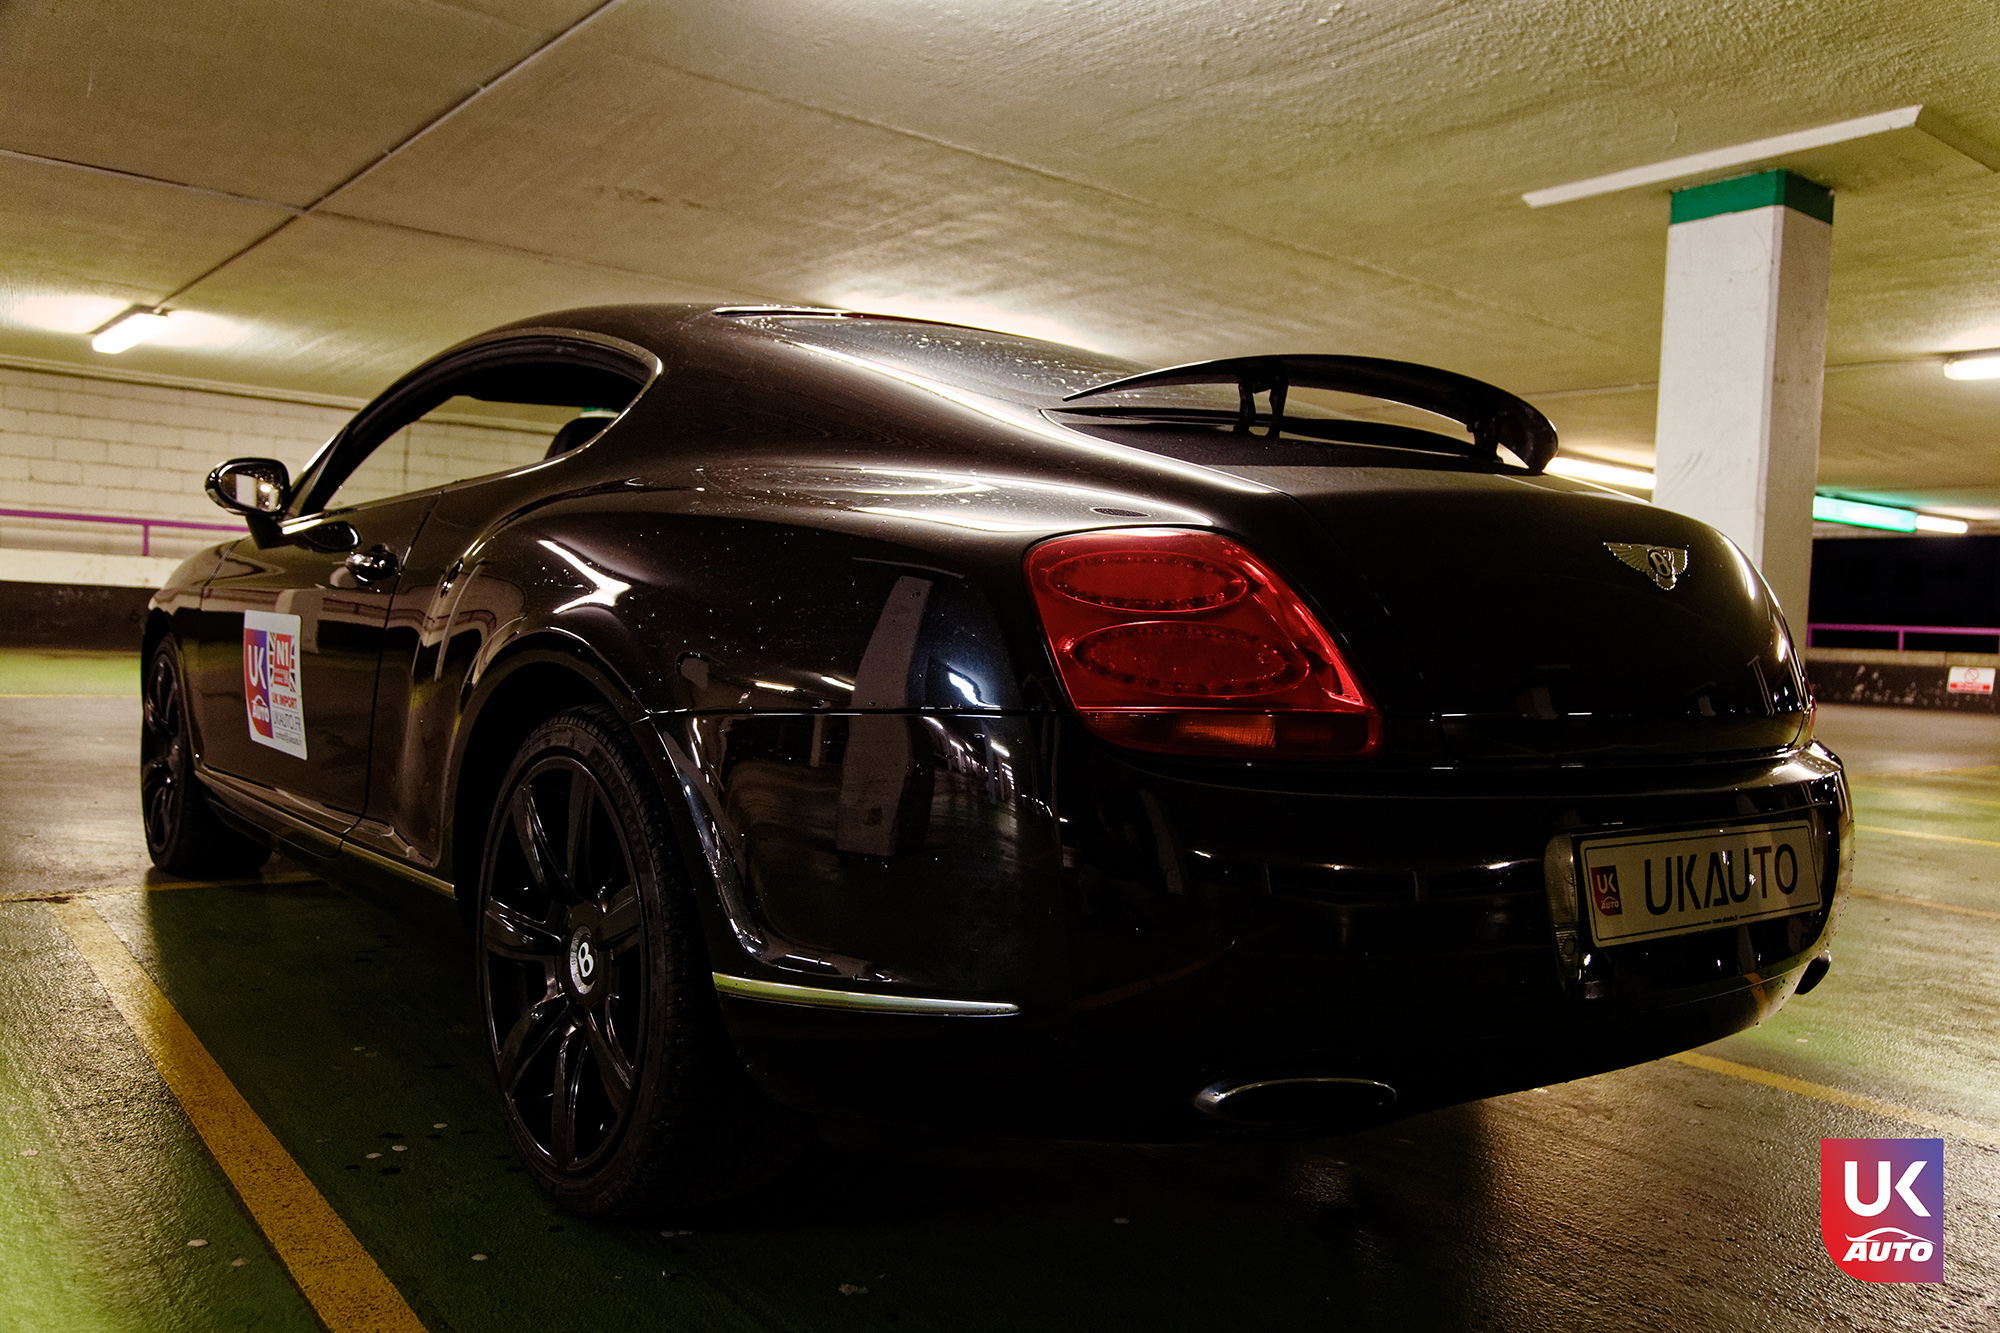 Importation Bentley Continental GT Speed edition W12 6.0l Bi turbo par UKAUTO RHD IMPORT 610 Chevaux Monstre du bitume importation directe dangleterre par UKAUTO IMPORT 5 - Importation Bentley Continental GT Speed edition W12 6.0l Bi turbo par UKAUTO RHD IMPORT 610 hp importation directe d'angleterre